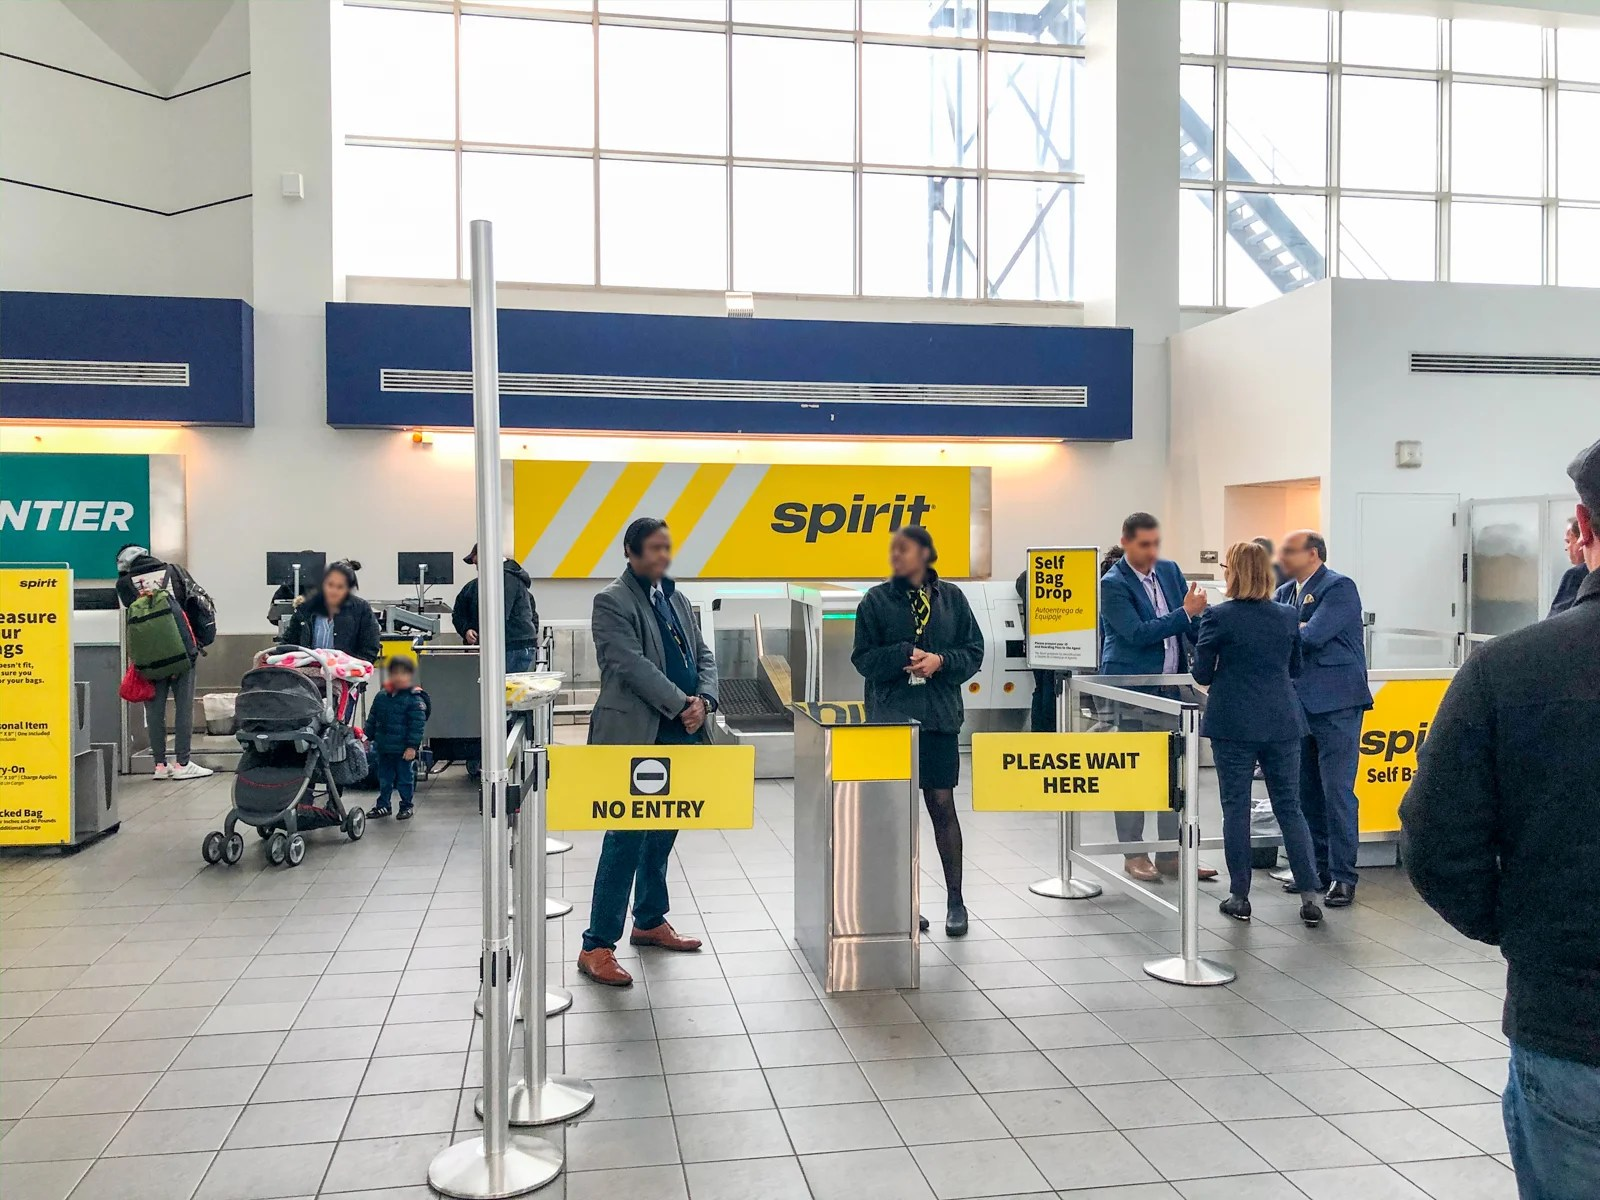 Spirit introduces self-service bag check at New York LaGuardia